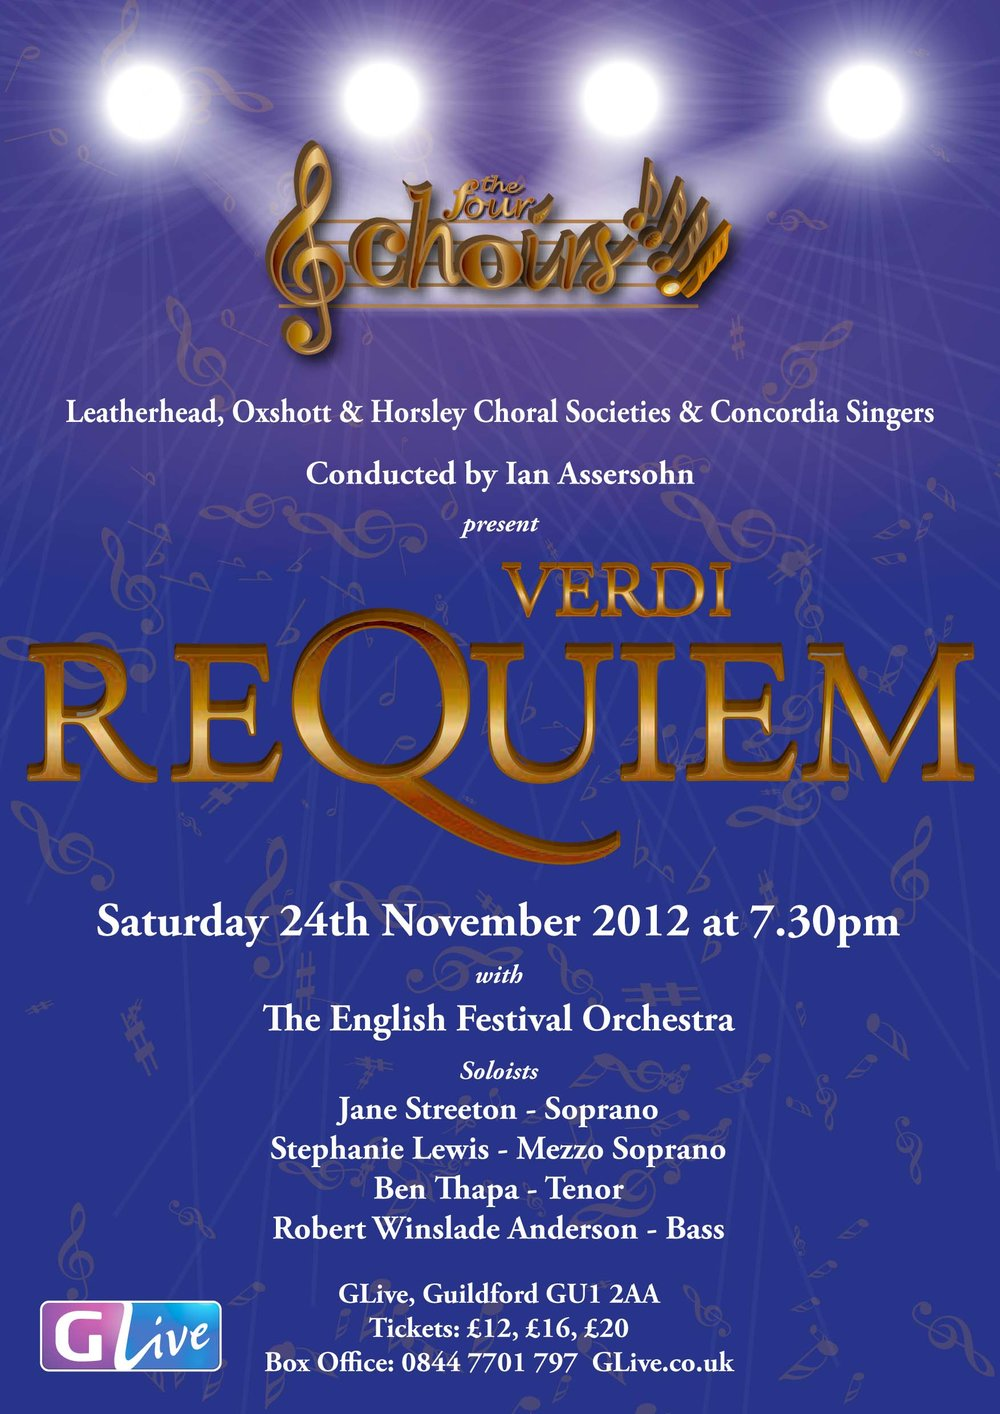 Verdi_Requiem_Flyer9.jpg